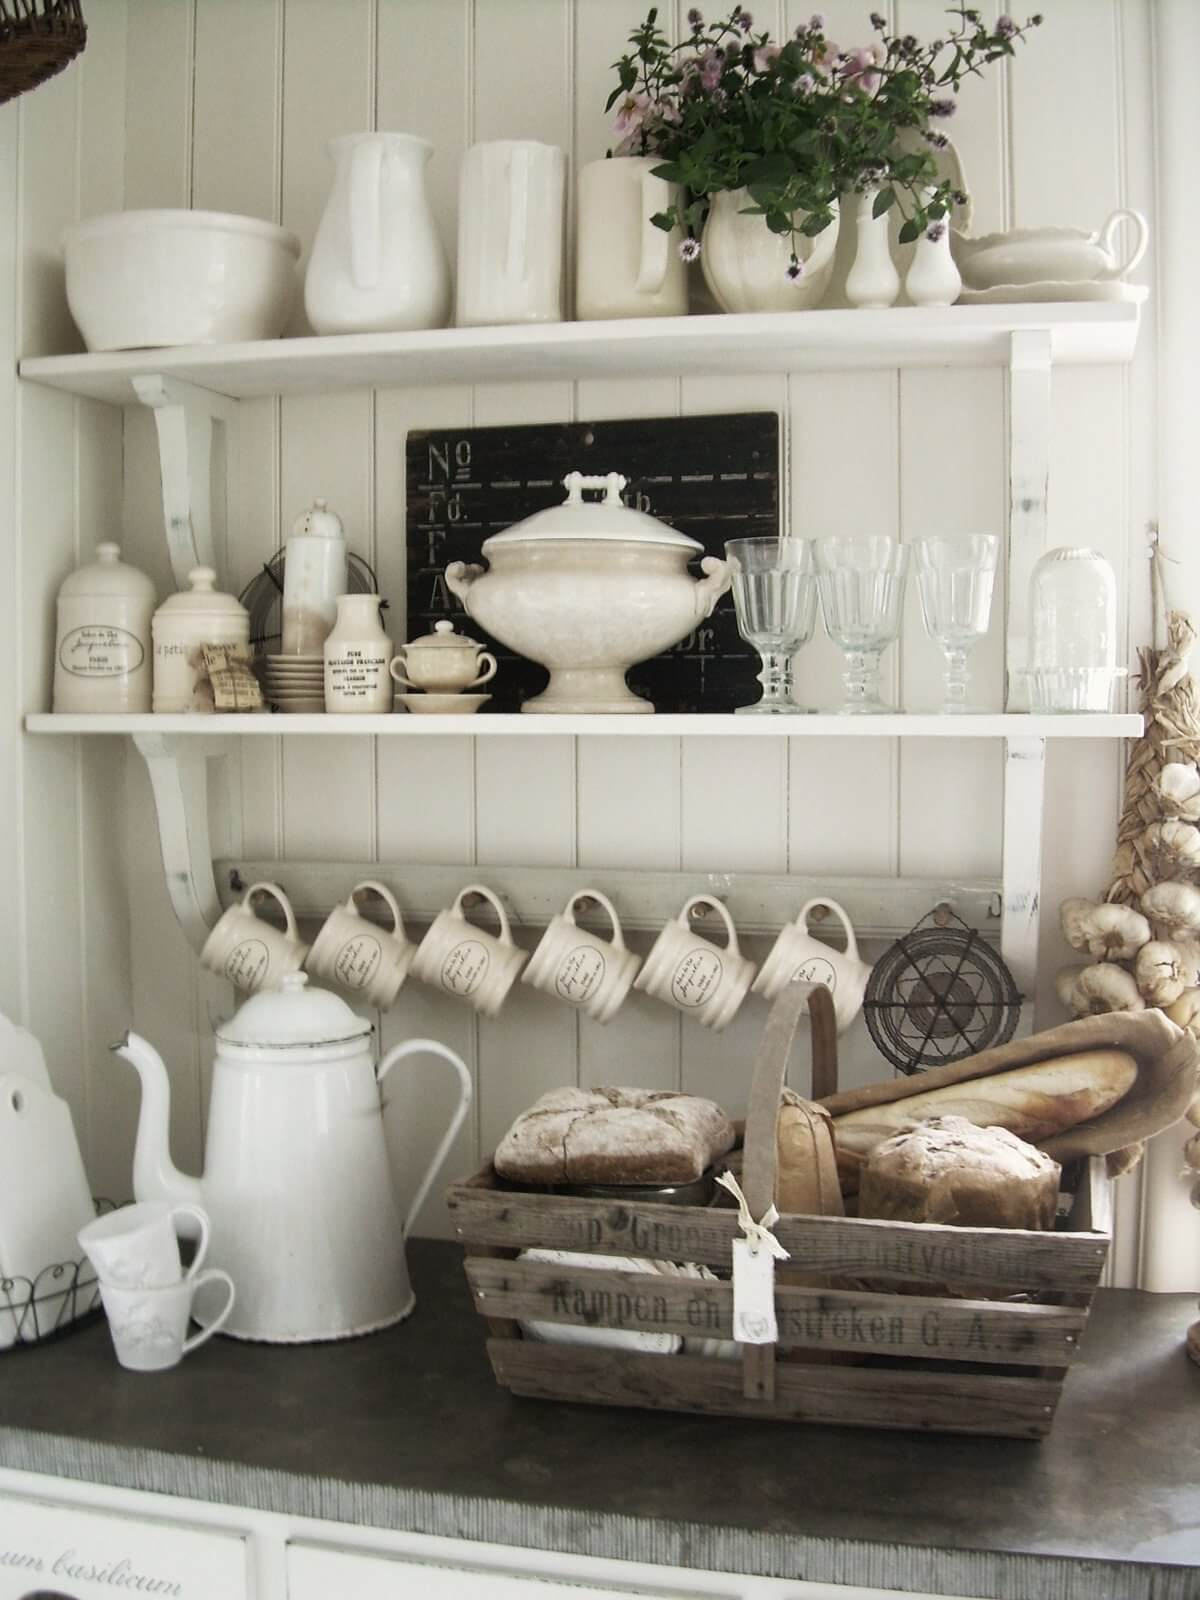 French Kitchen Exposed Shelving Crockery Display